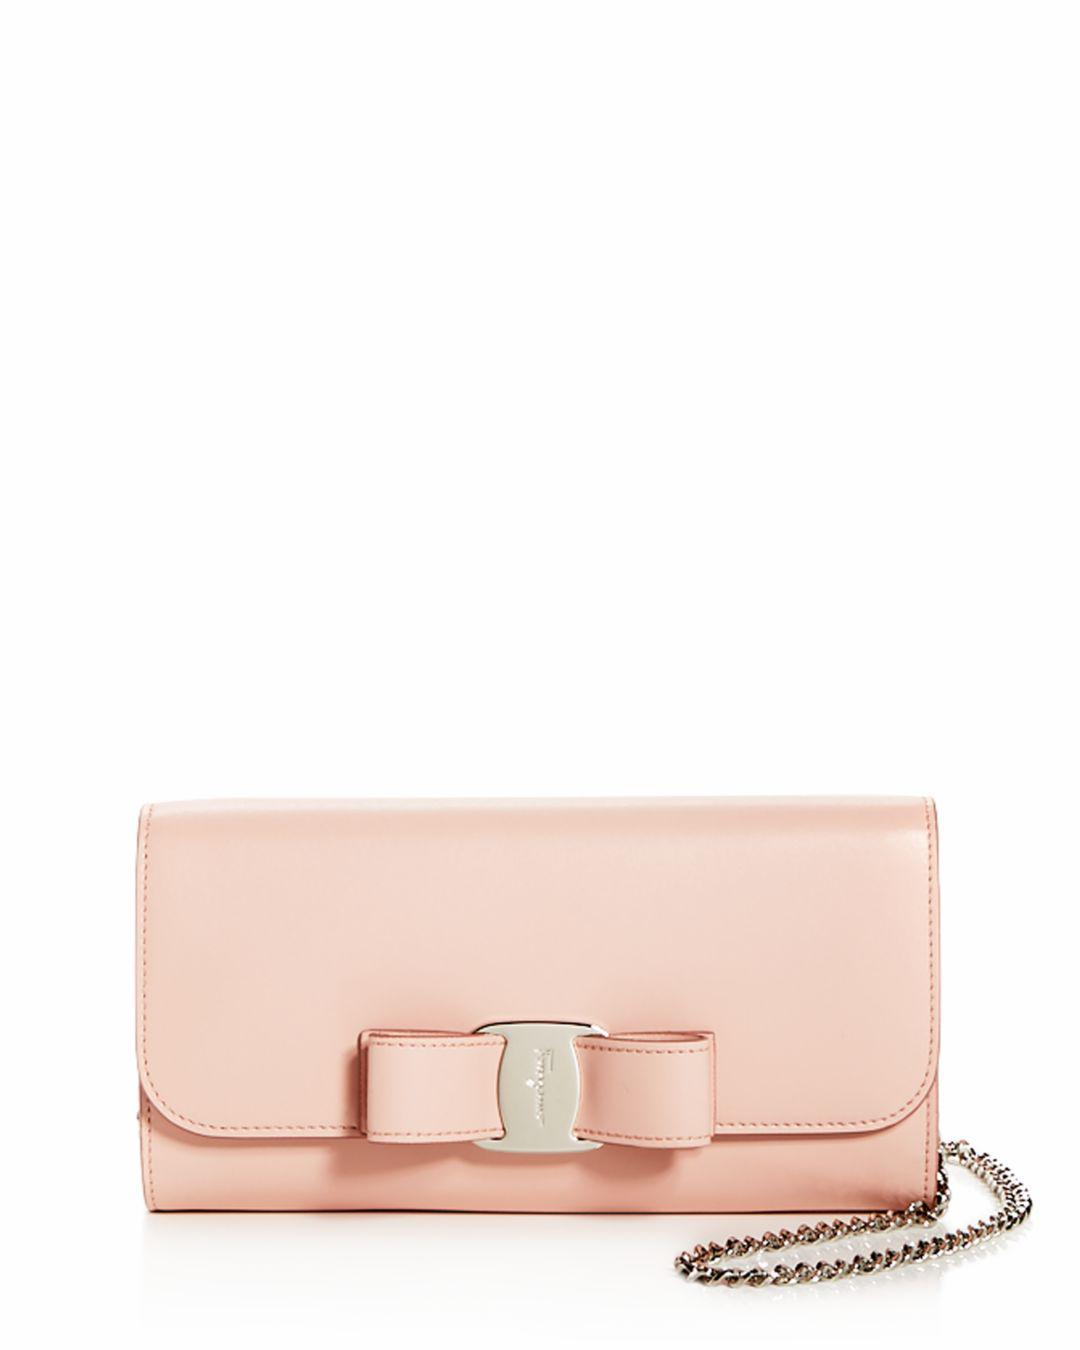 376c96db7472 Lyst - Ferragamo Oversized Vara Bow Mini Bag in Pink